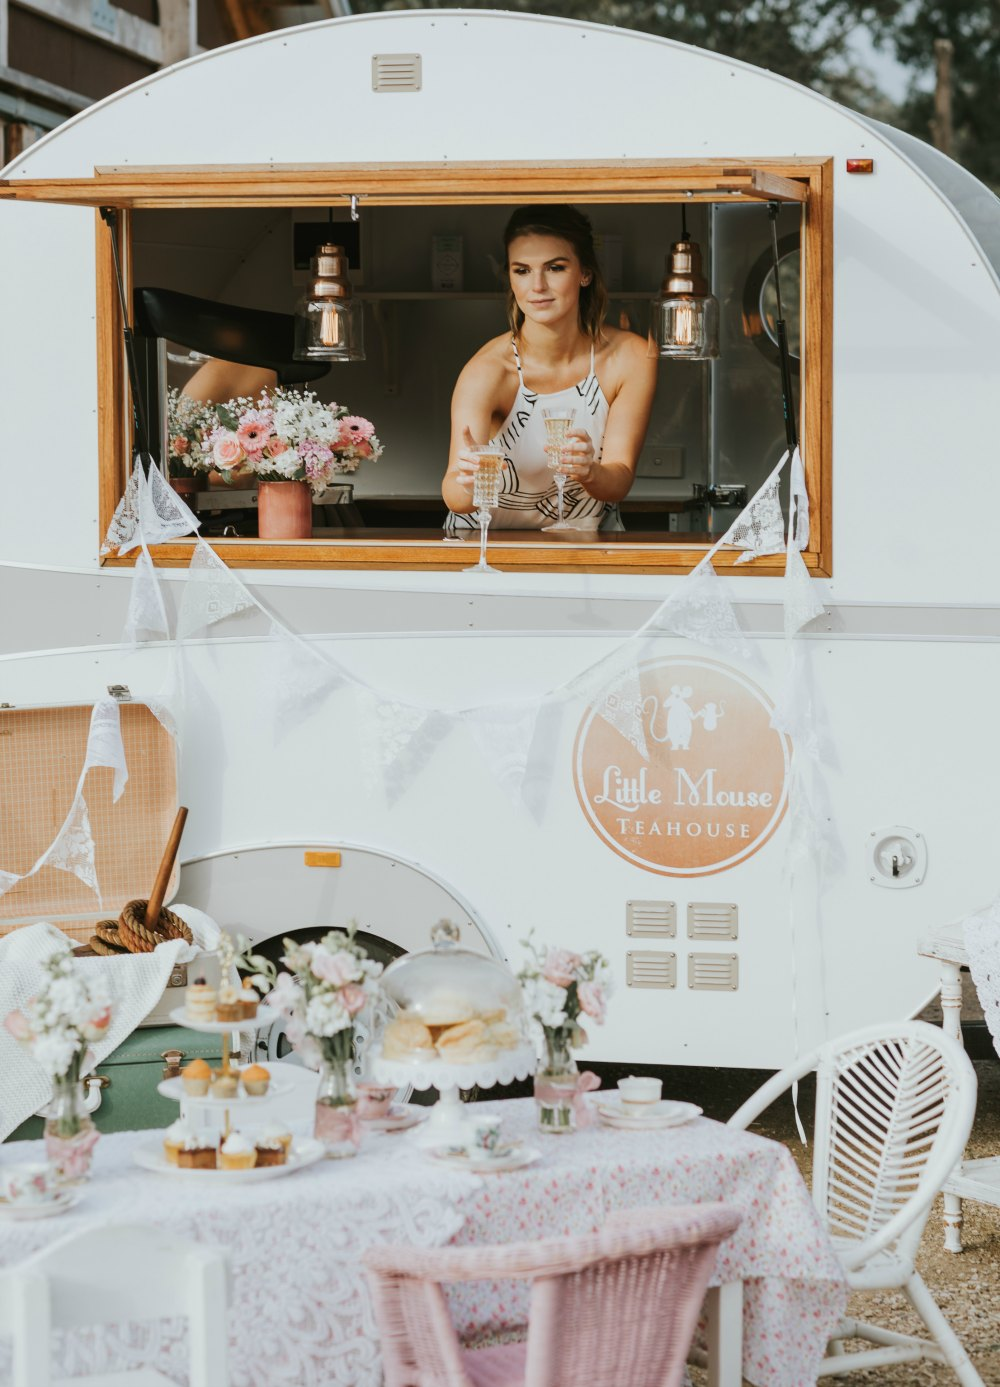 Vintage caravan for hire in Melbourne and surrounding regions.